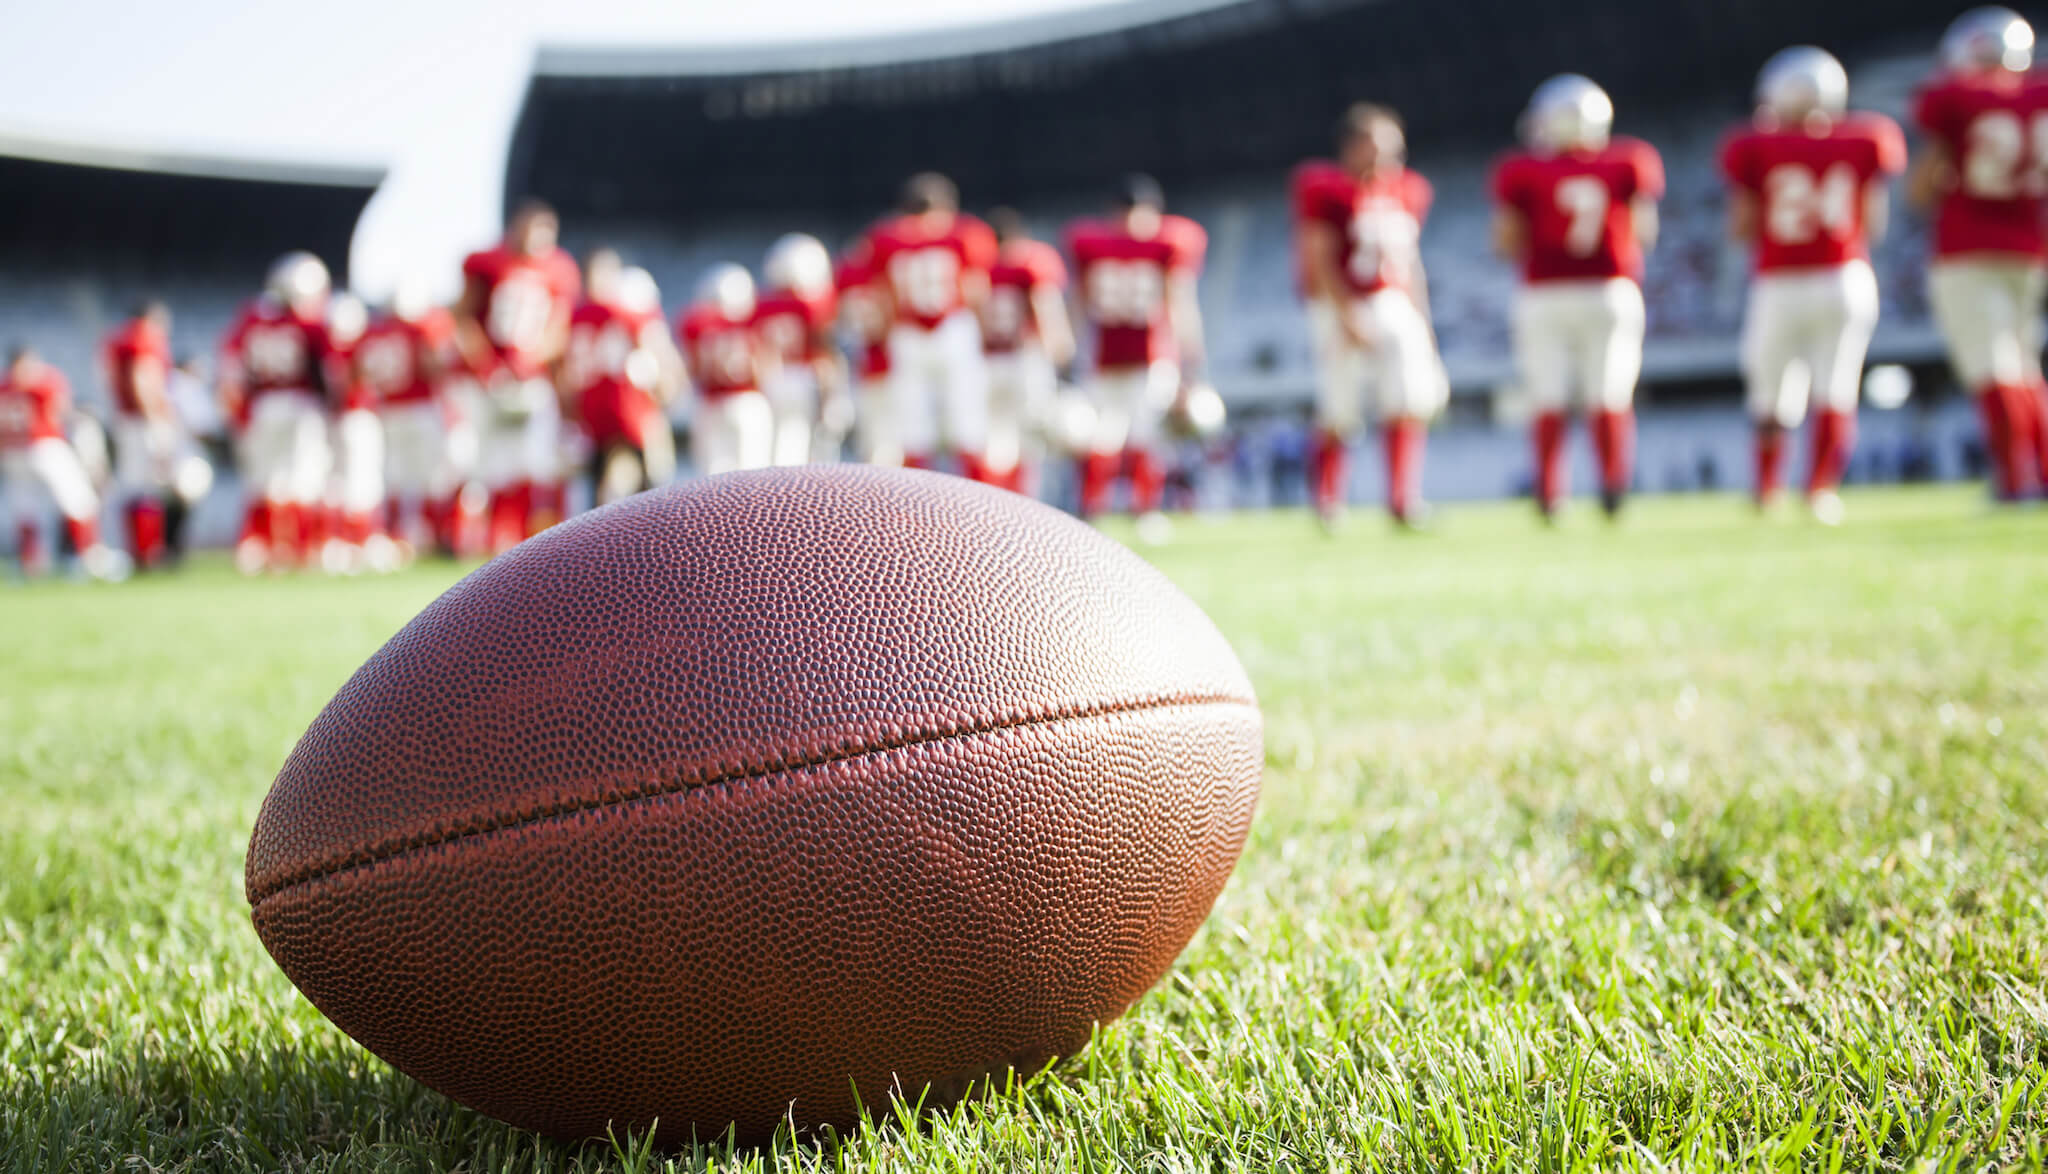 Class Action Complaint Filed Against the NCAA on Behalf of Ohio State University Football Players